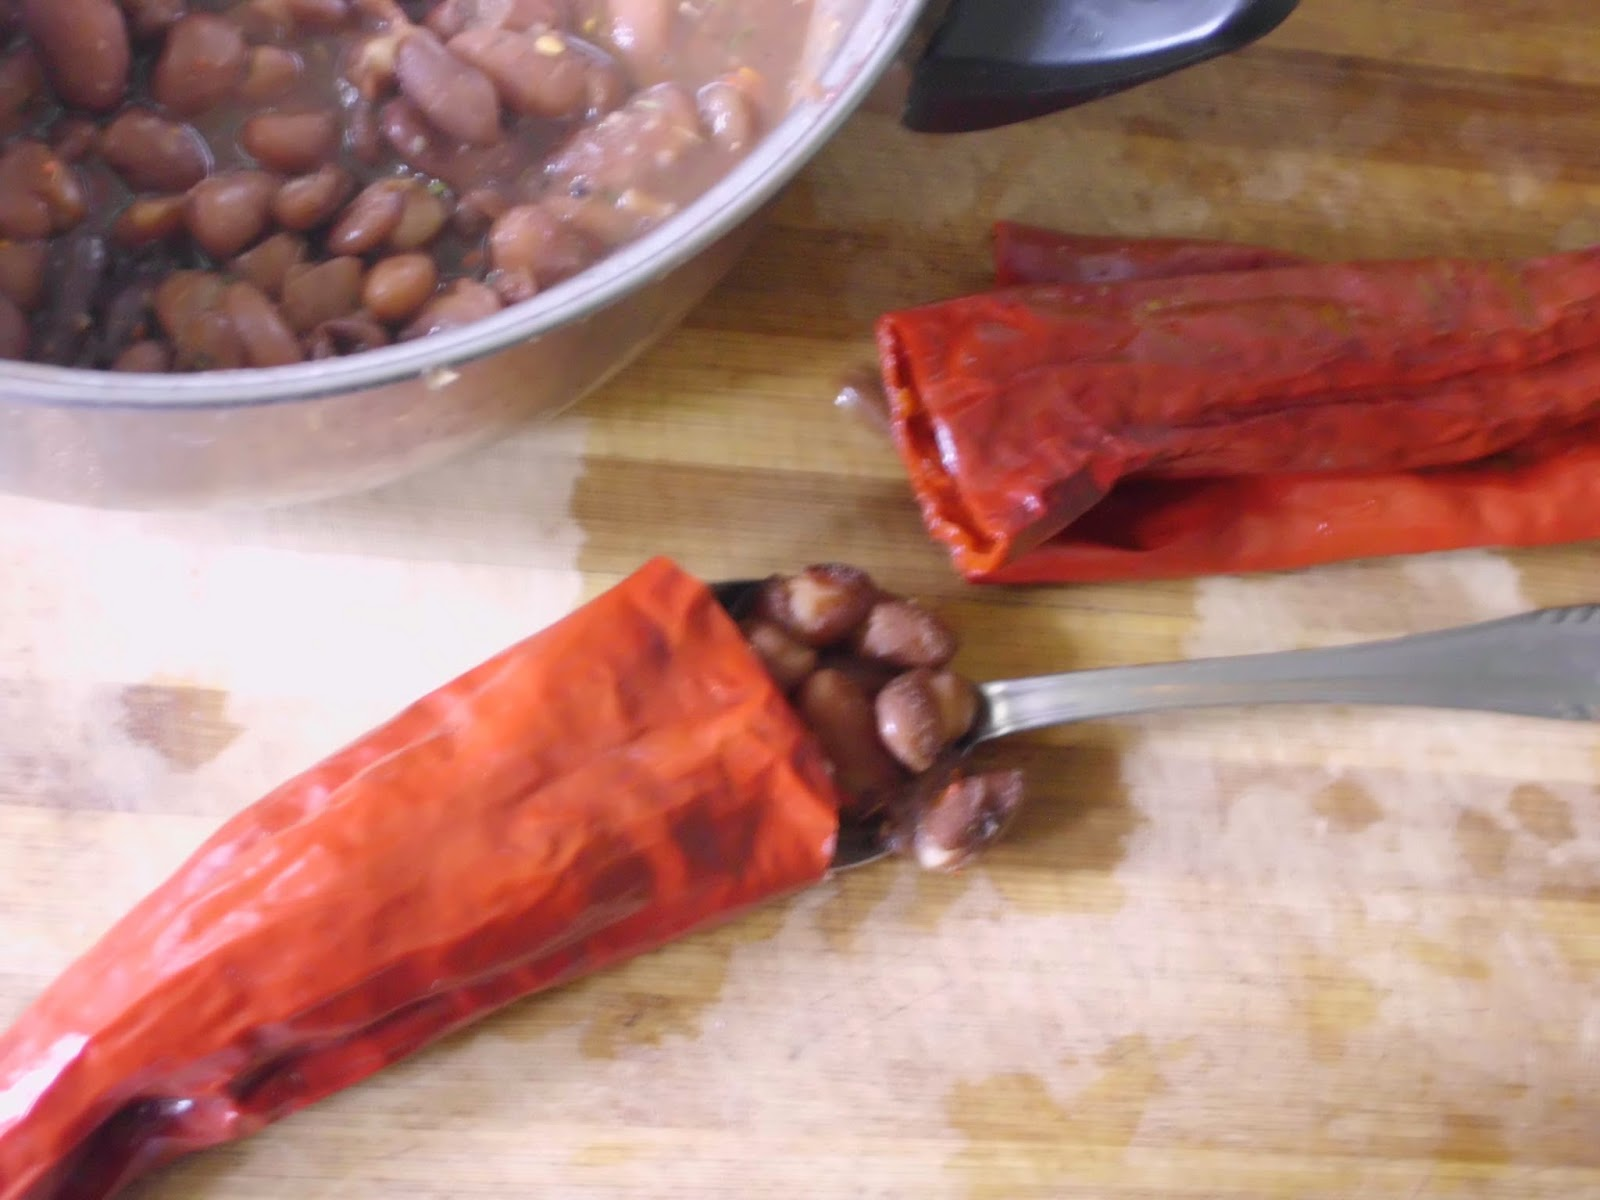 stuffing peppers with beans